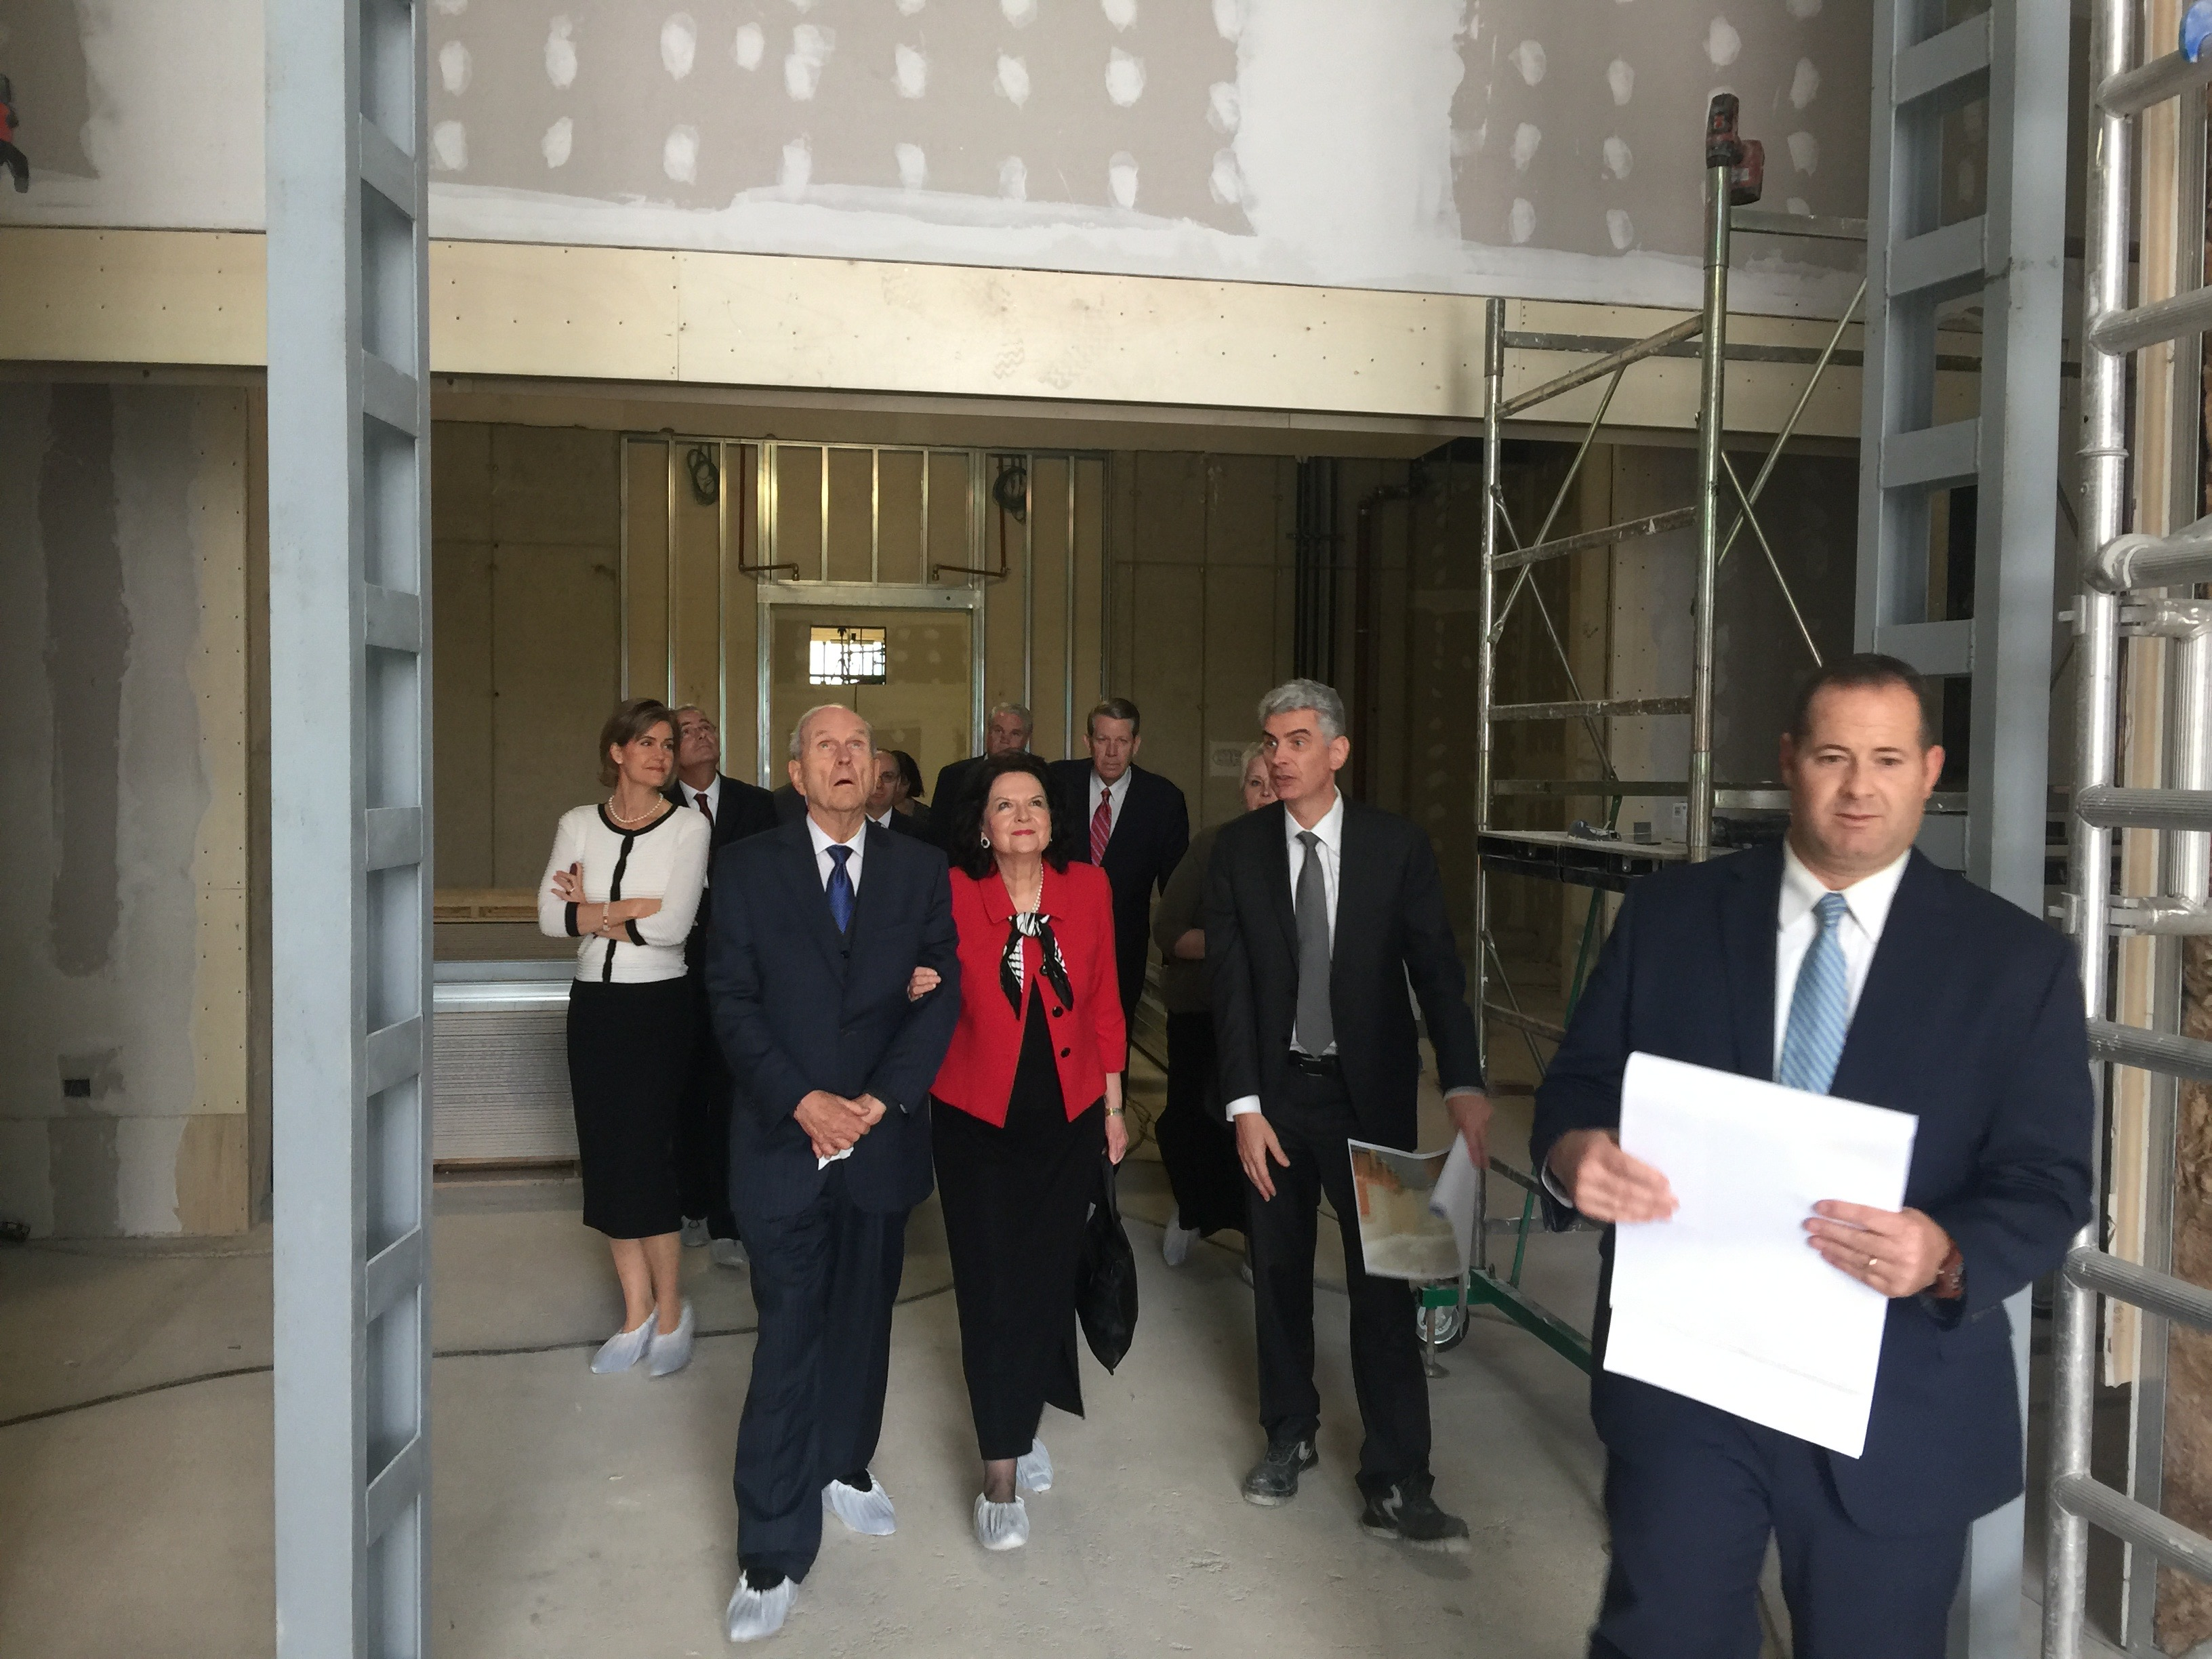 President Russell M. Nelson and Sister Wendy Nelson tour through the Rome Italy Temple during an early construction phase.